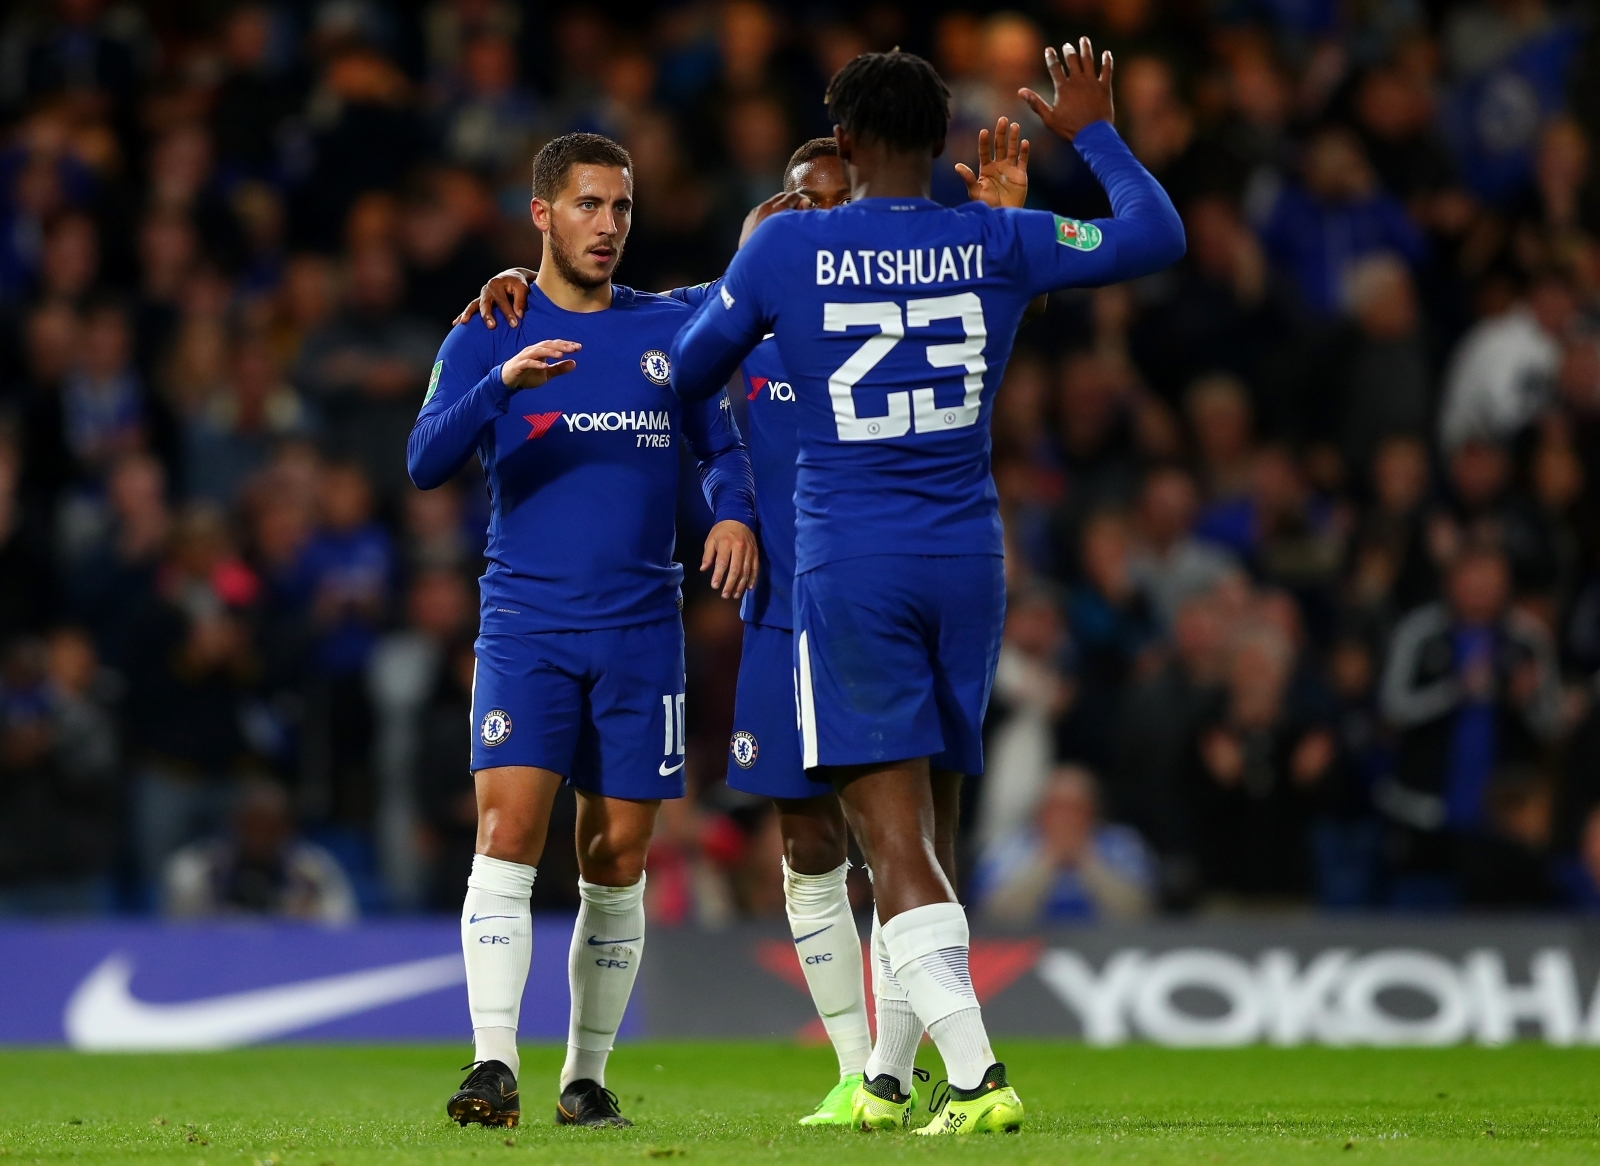 Eden Hazard and Michy Batshuayi